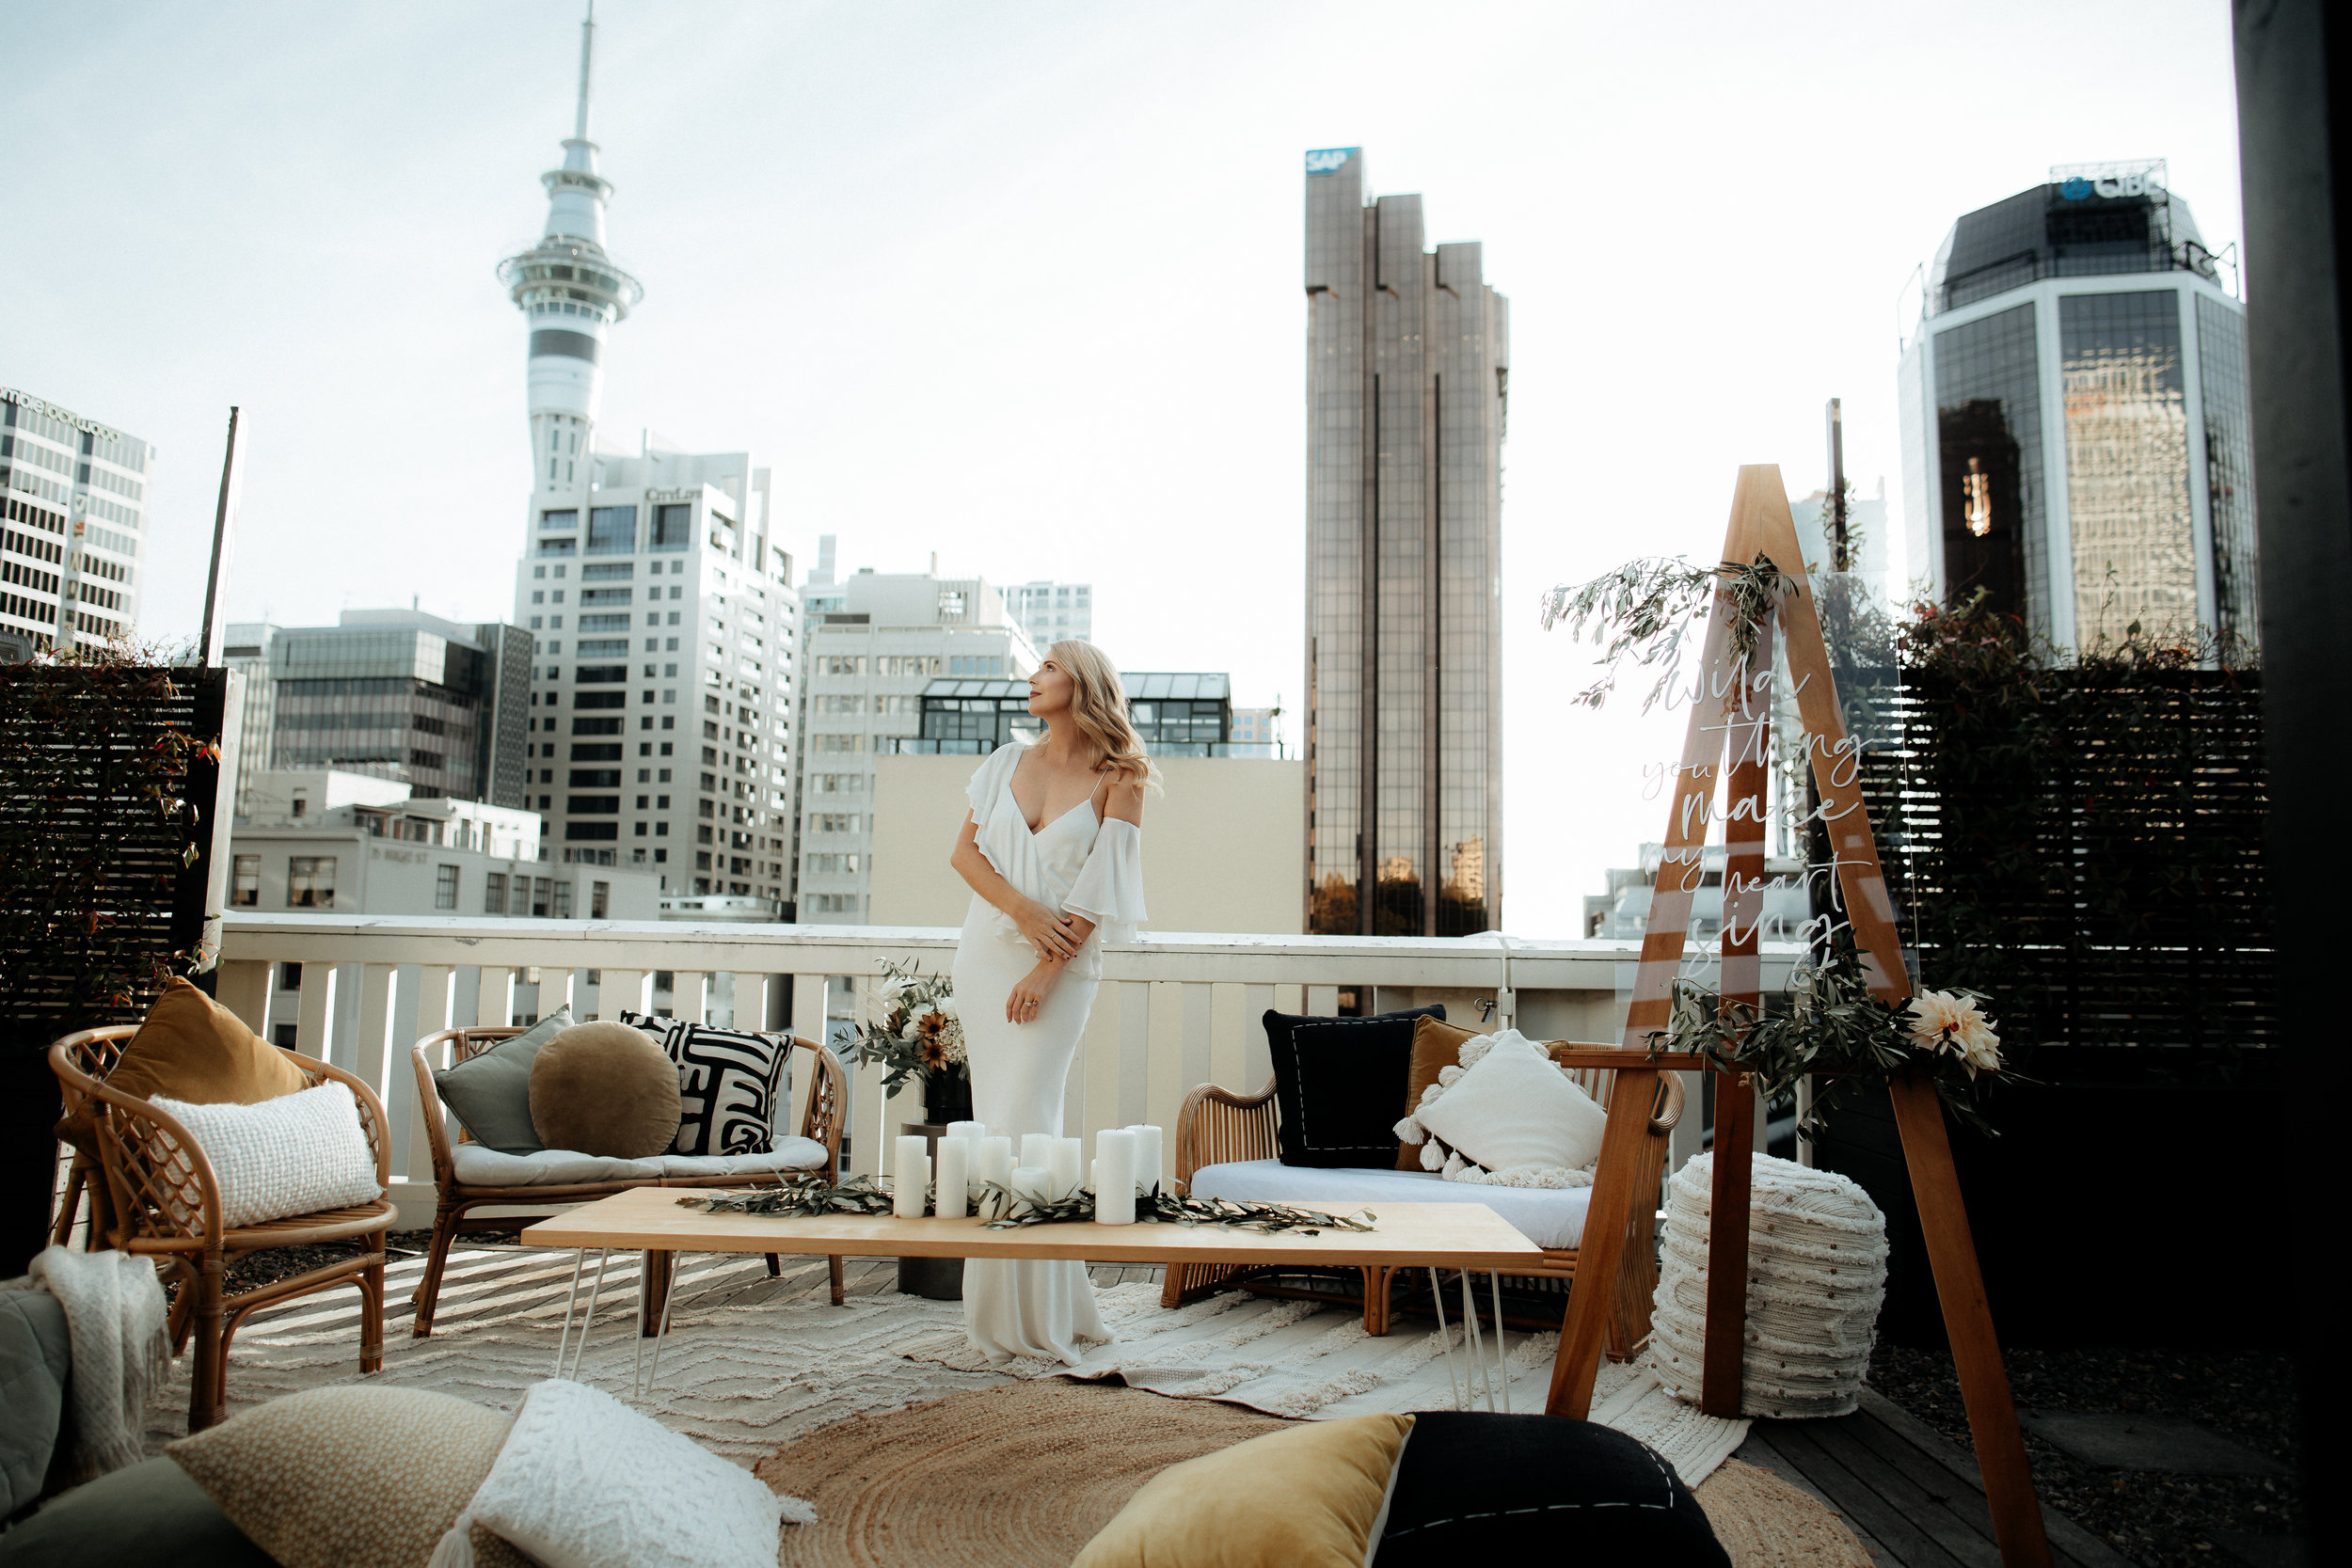 zandaphotography_Boheme_events_wedding_Auckland-60.jpg